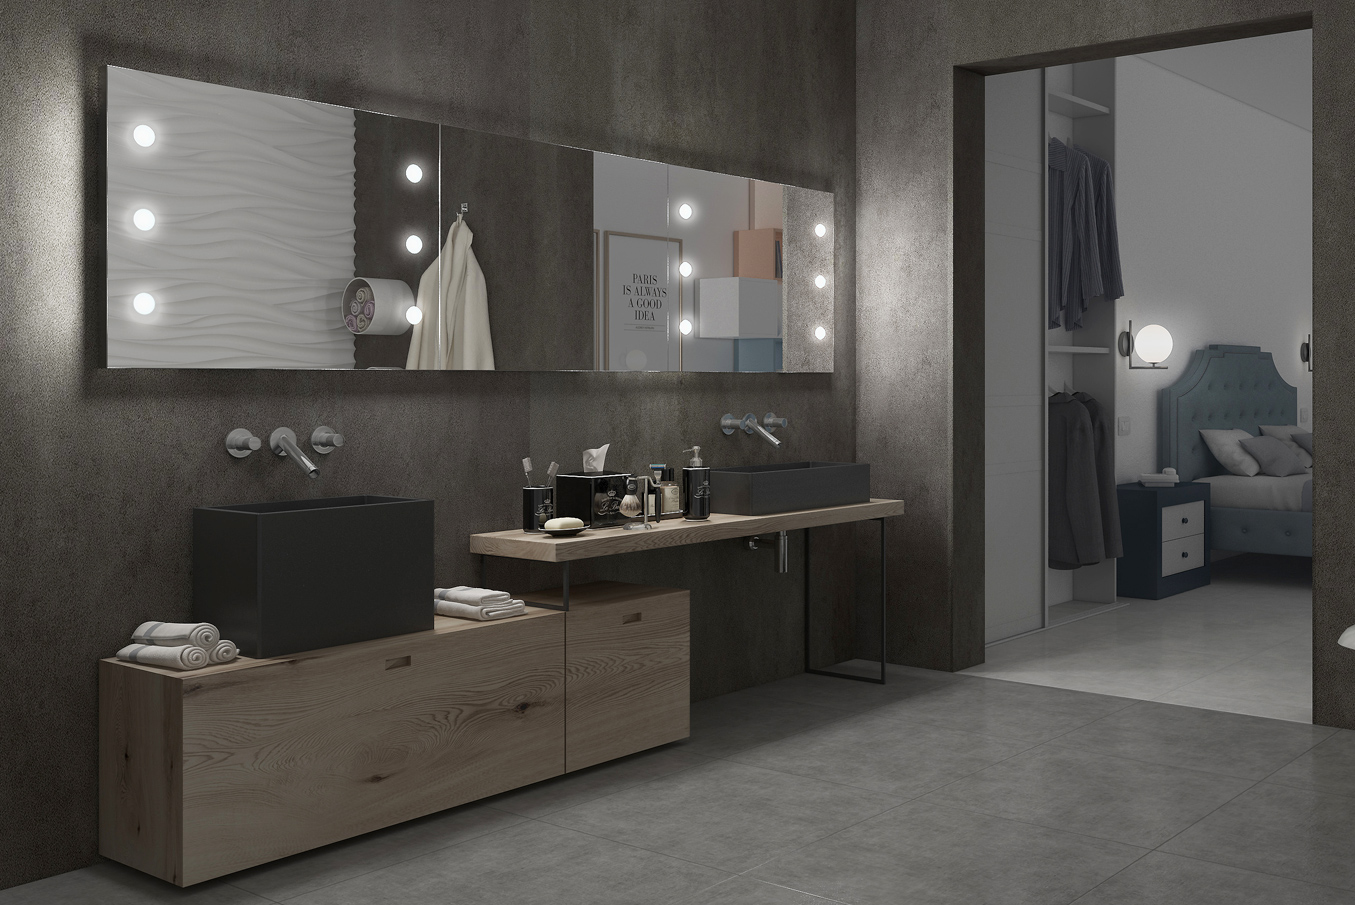 Rectangular and frameless illuminated large wall mirror for double sink bathroom, industrial modern interior design